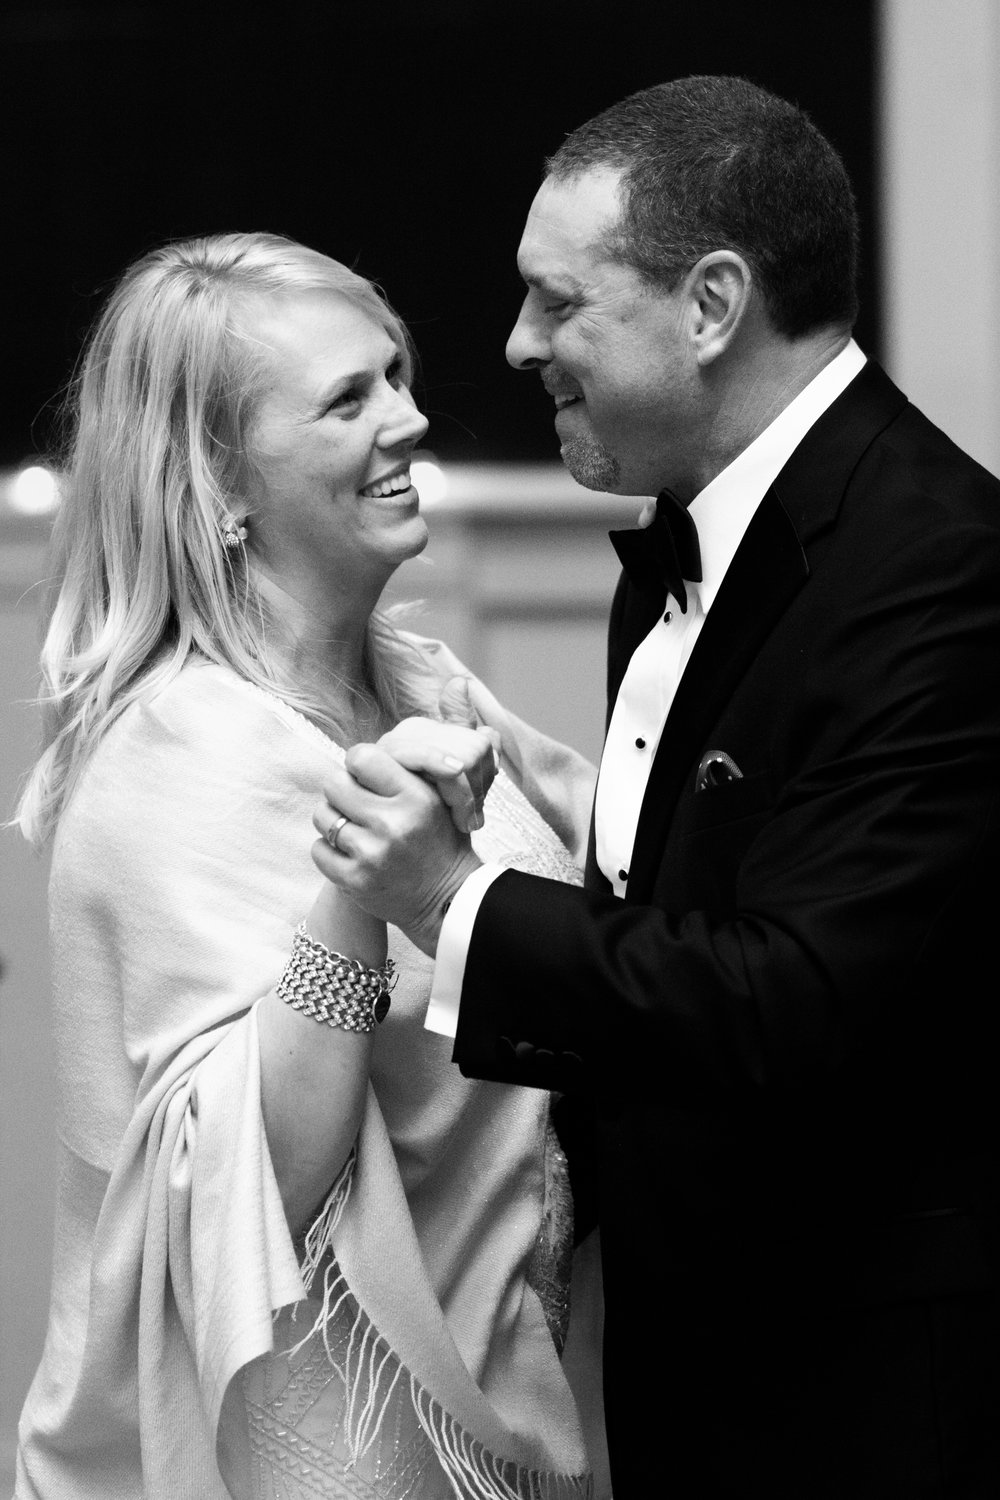 NewOrleansWedding (40 of 48).jpg